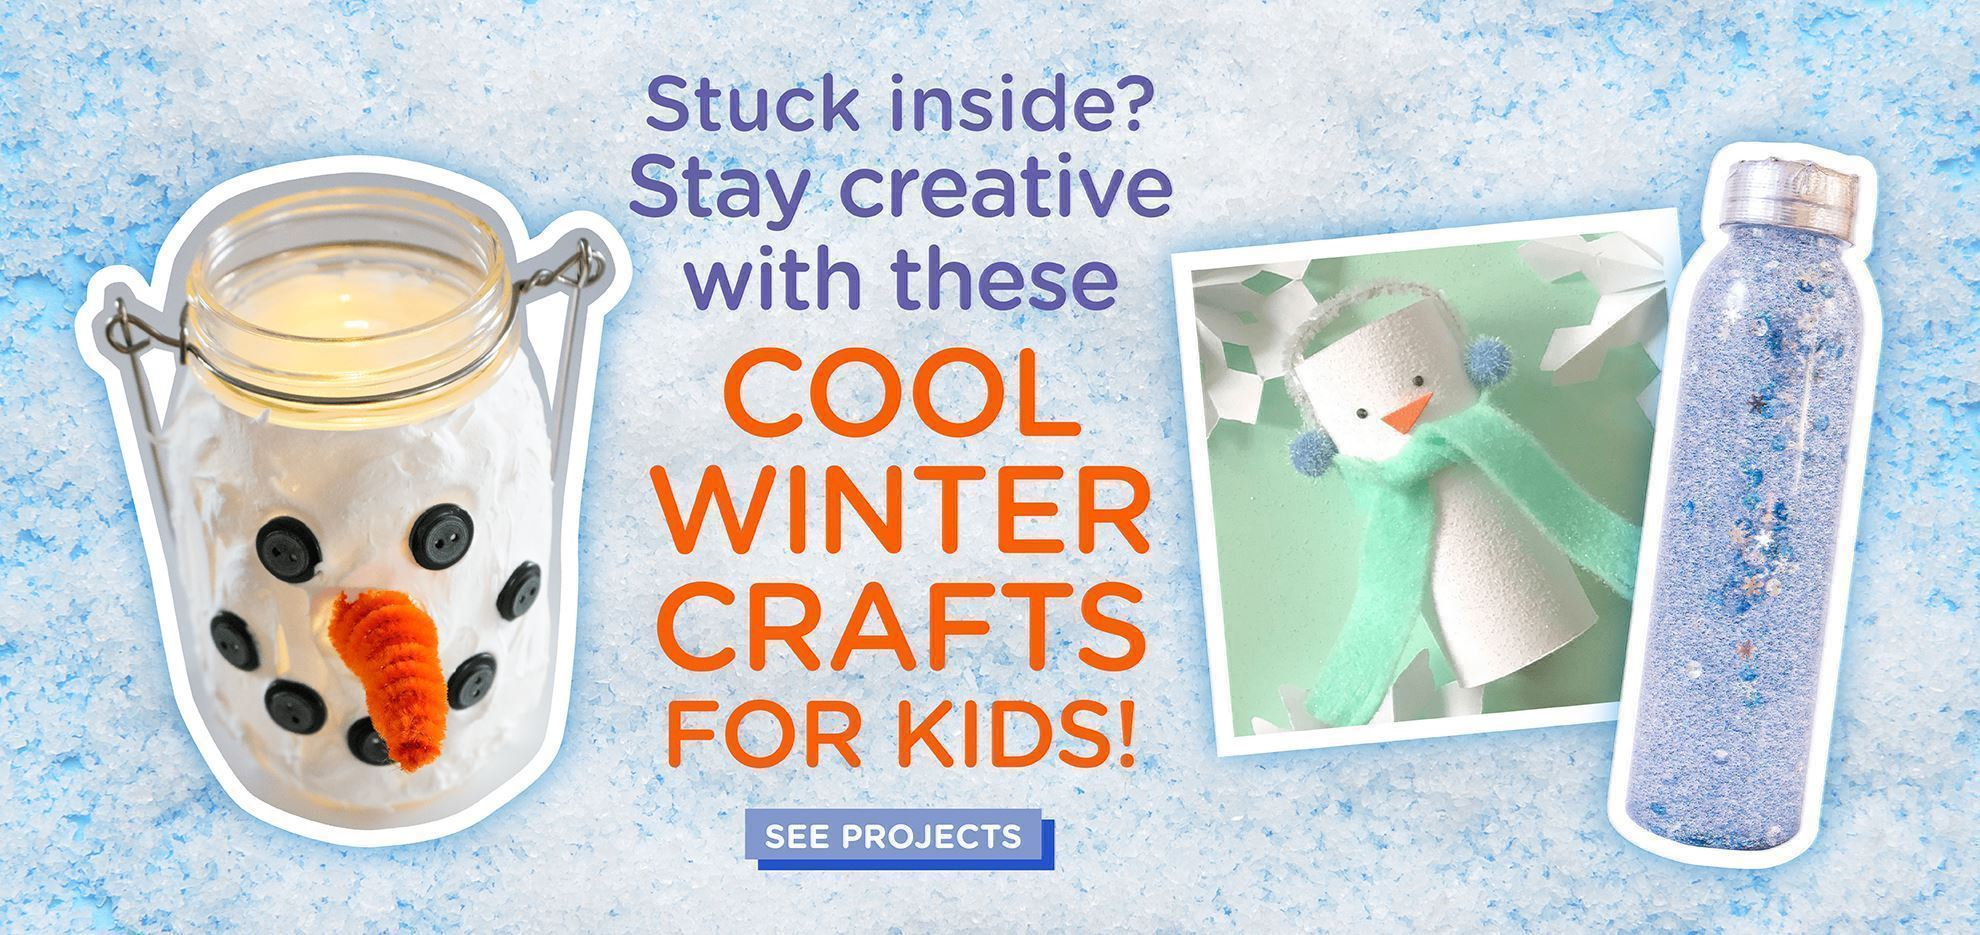 Kids Winter Crafting Project Ideas